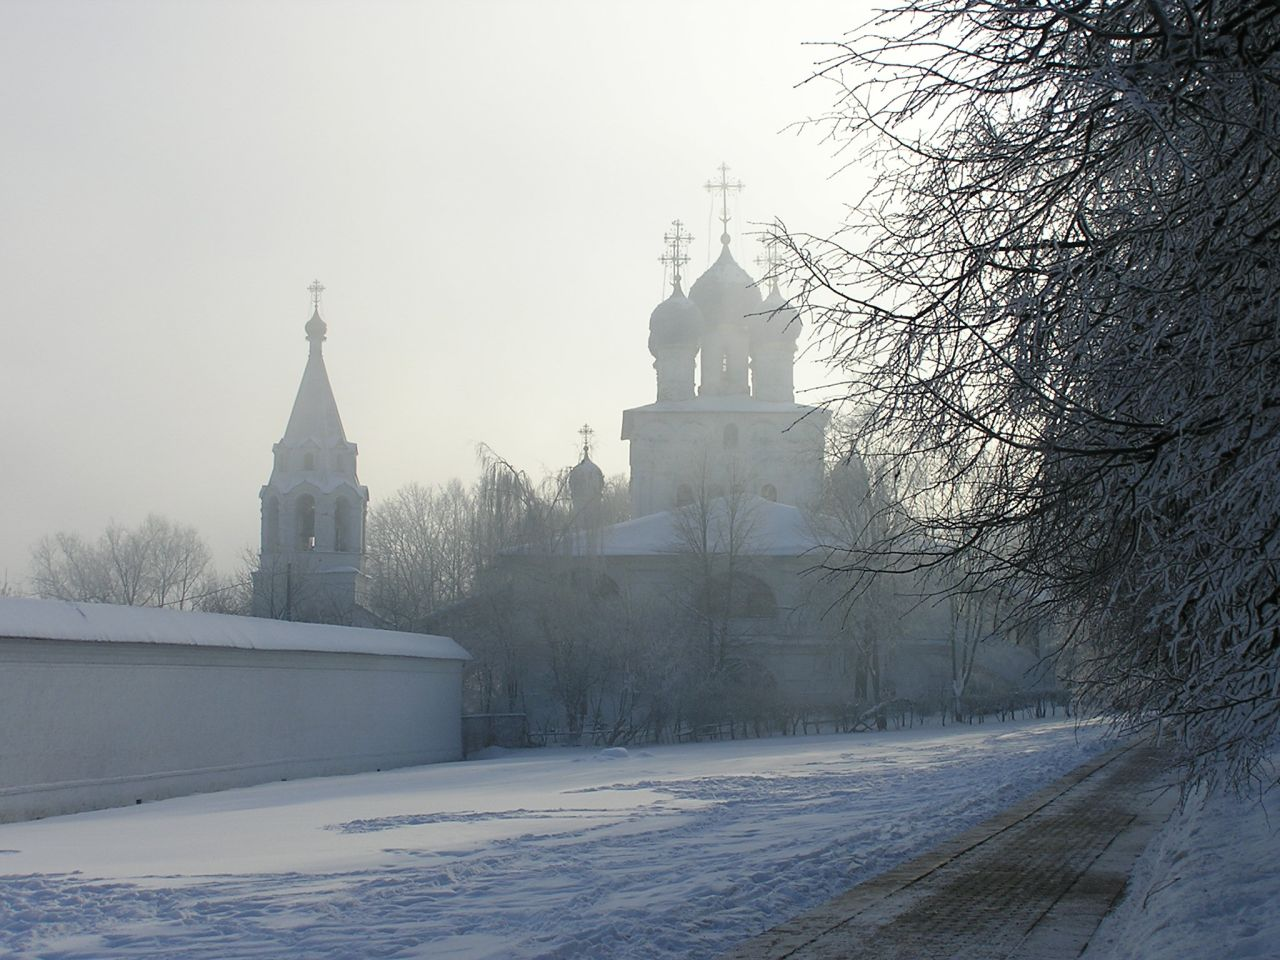 Moscow, Russia, wallpaper theme of